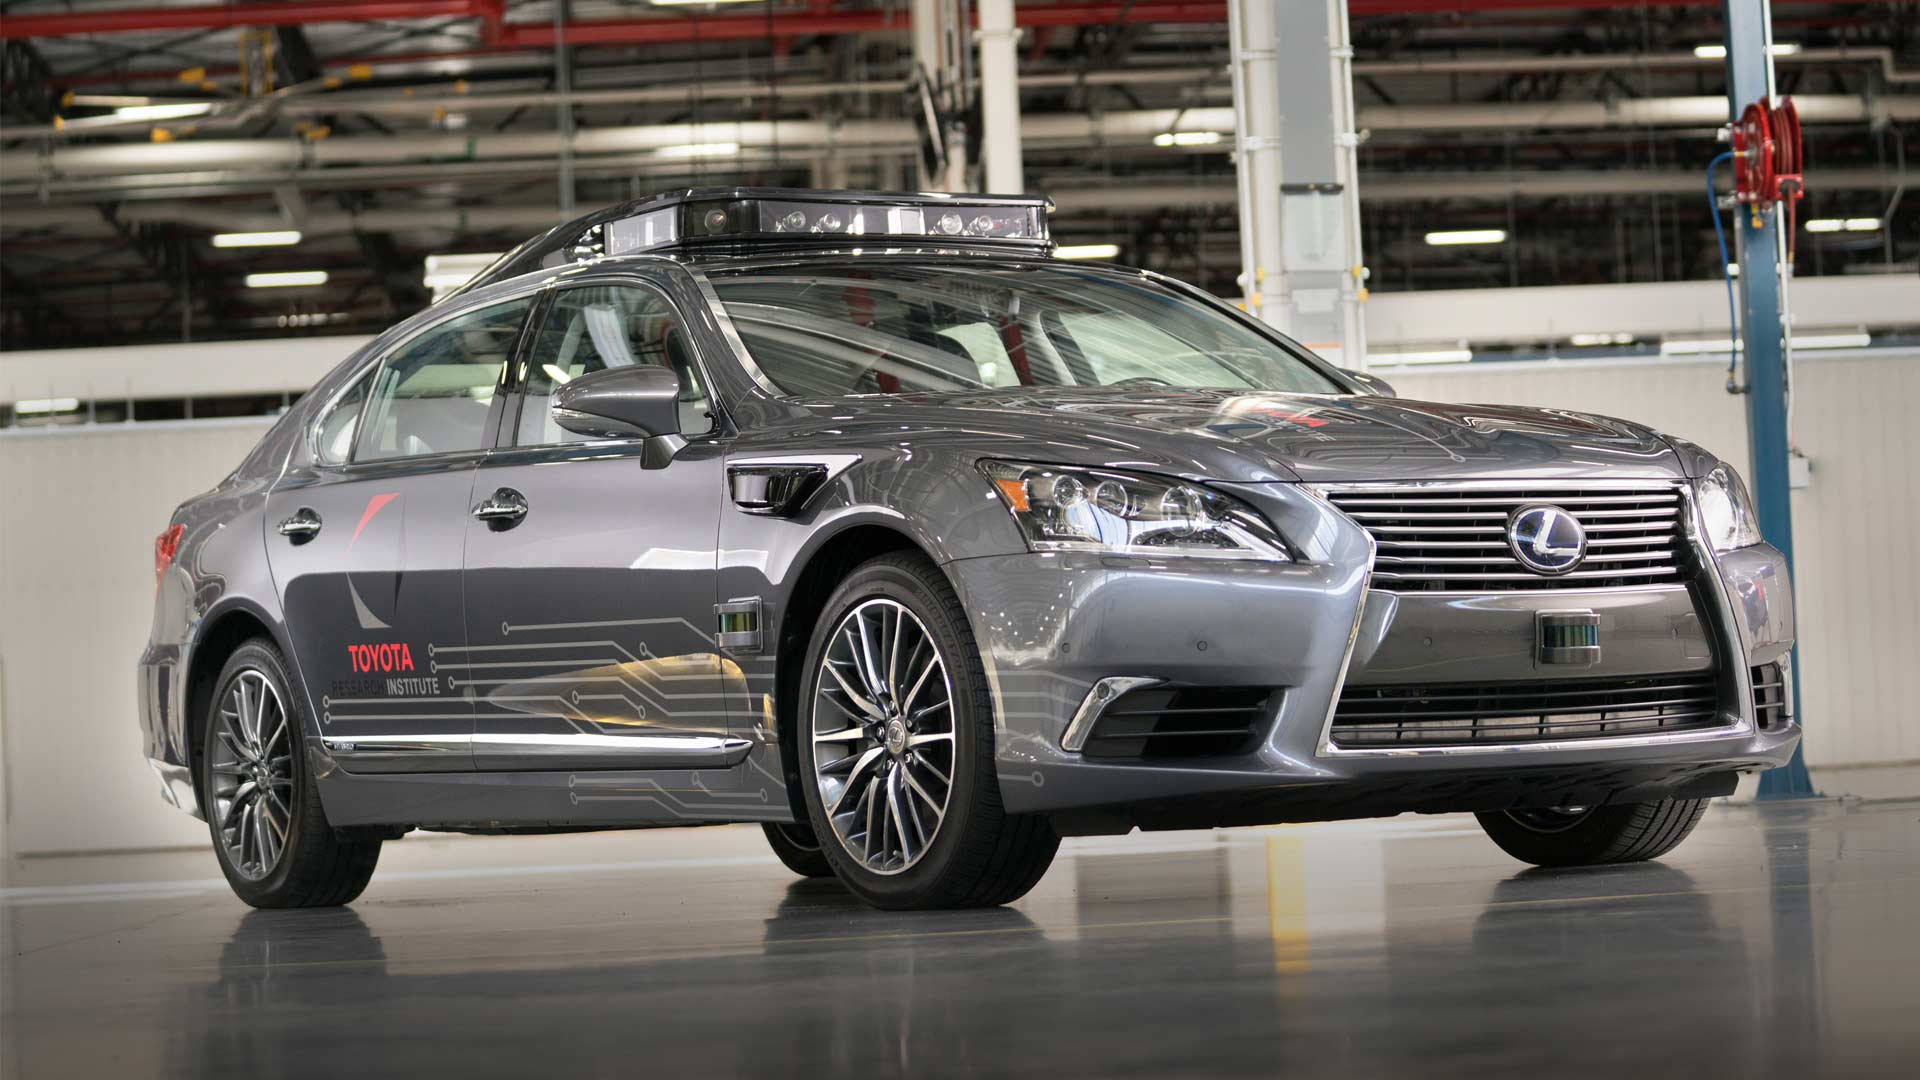 Toyota-Research-Institute-Platform-3.0-automated driving-Lexus-LS-600hL